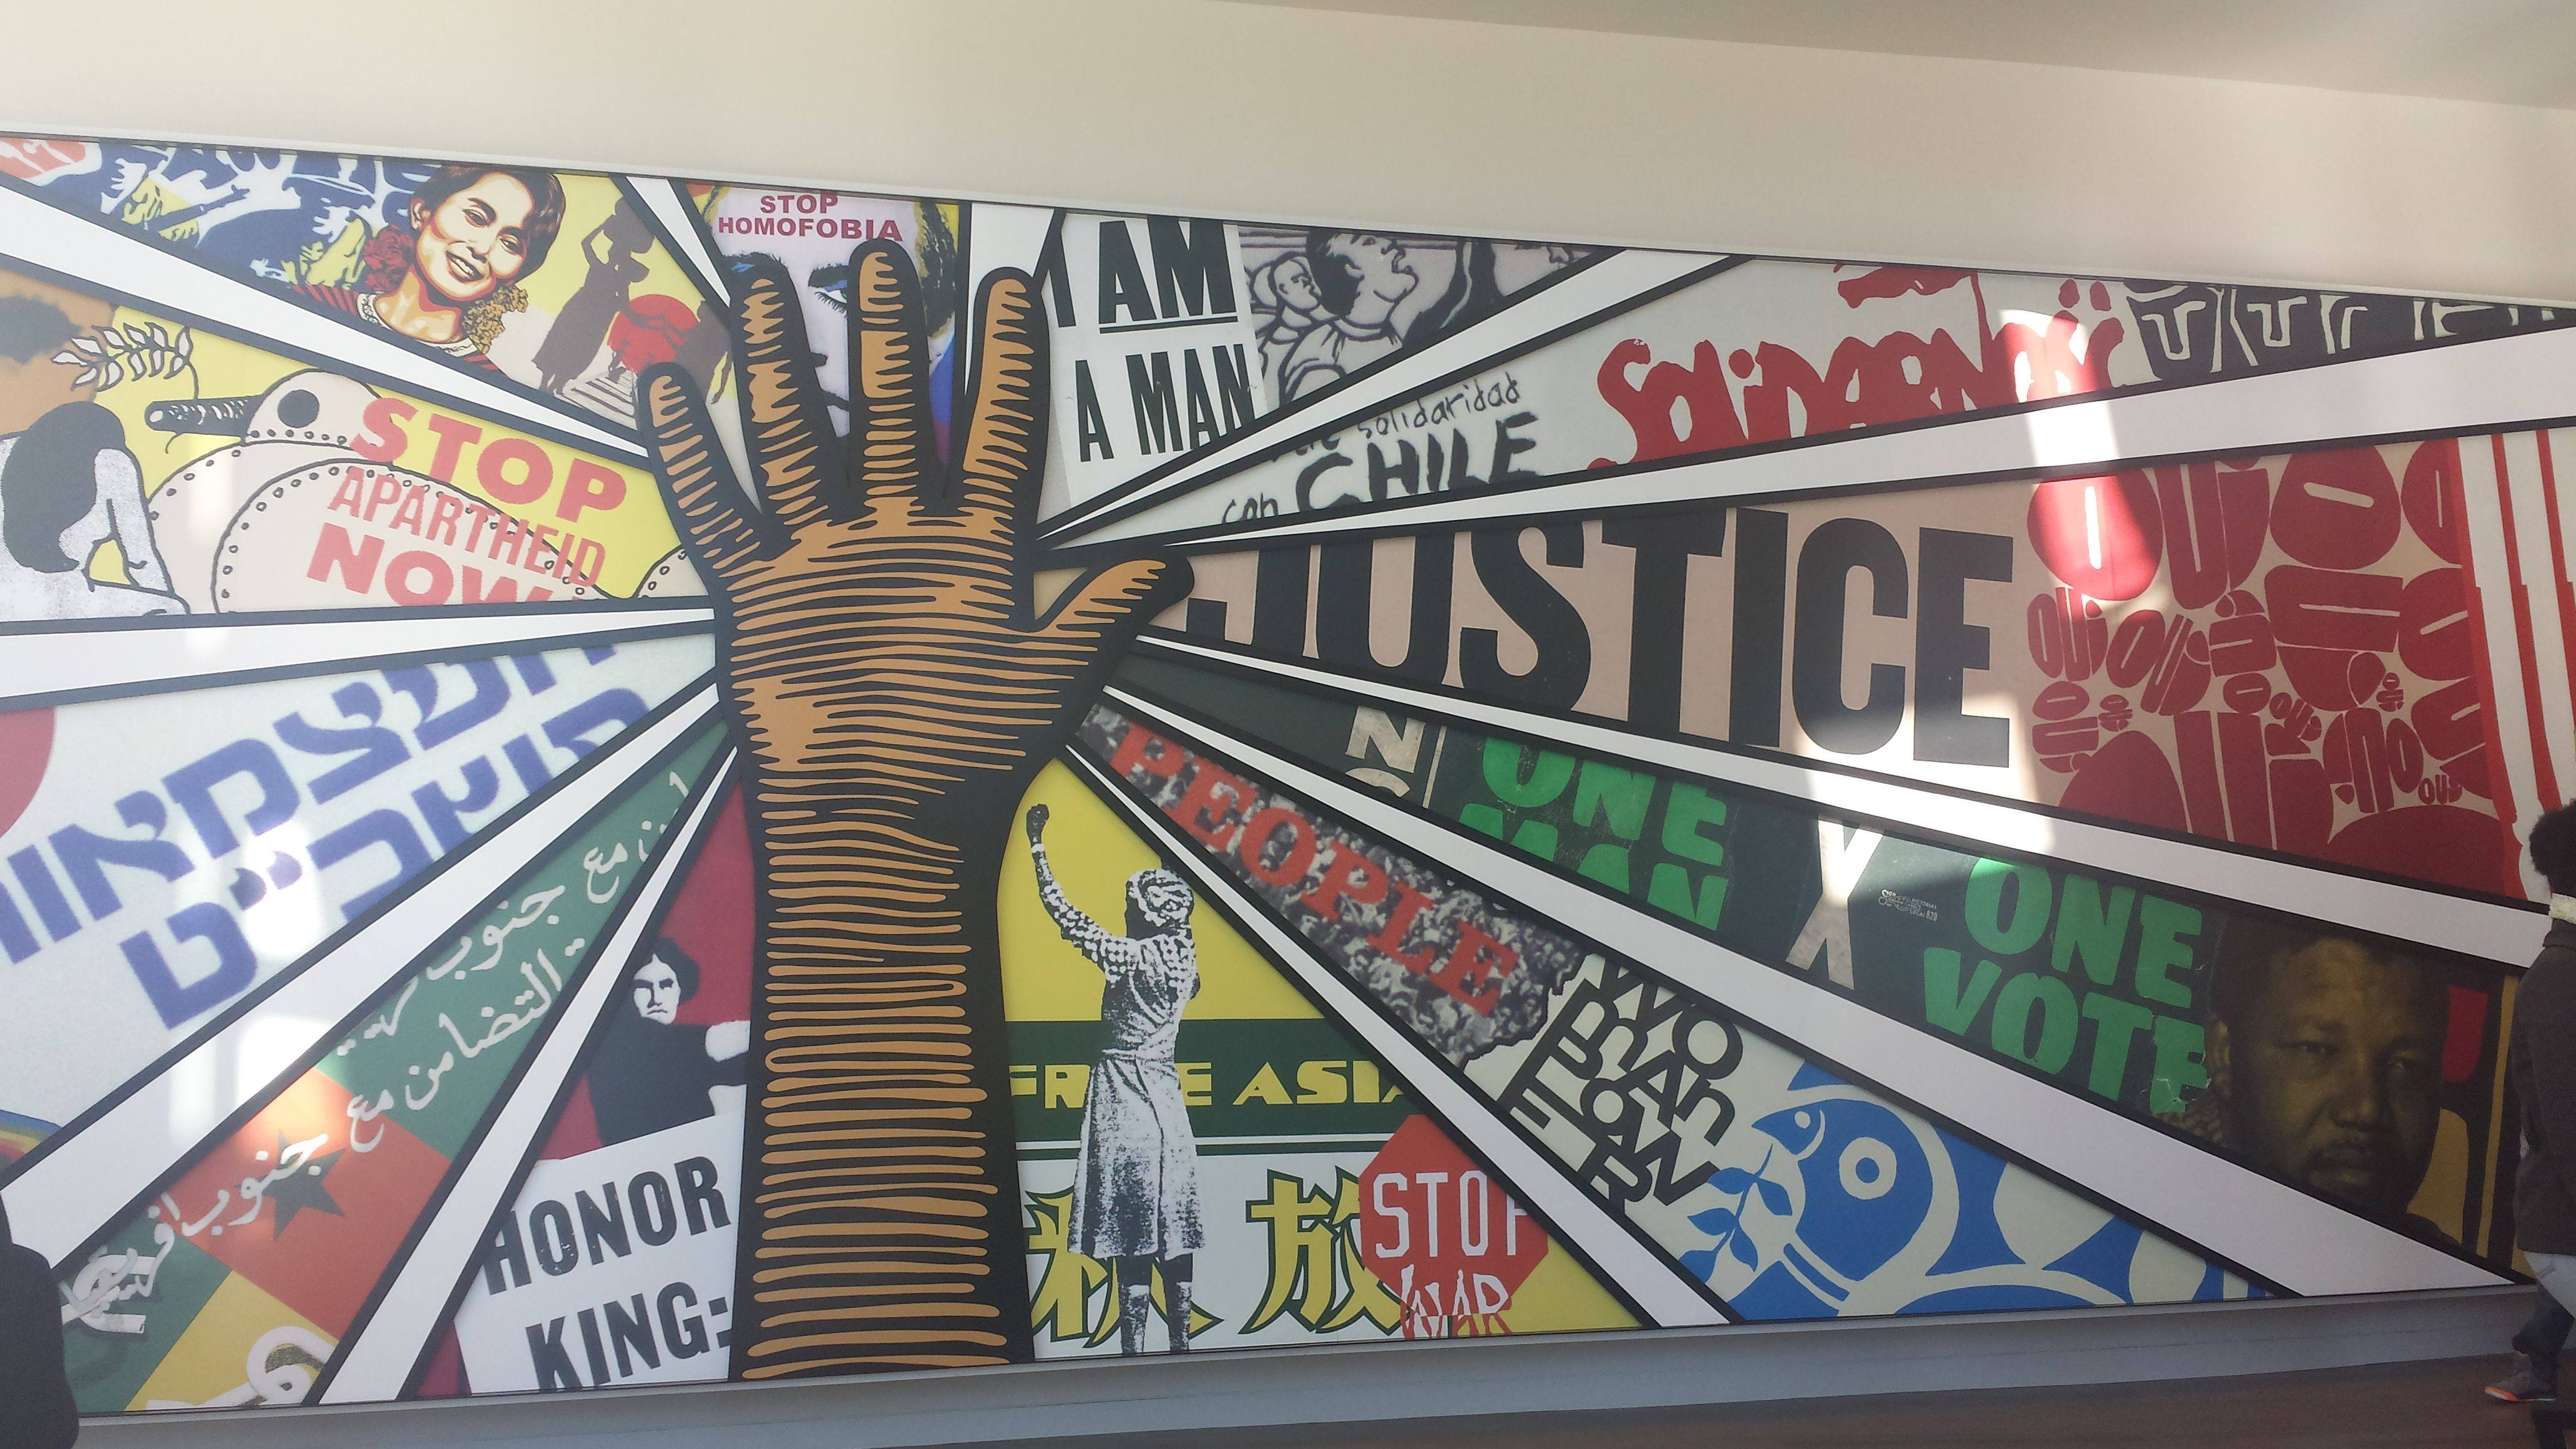 The National Center For Civil And Human Rights Made Our List Of The 13 Things To Do In Atl Check Out The Others On The Blog Bec Stuff To Do Tourist Atlanta